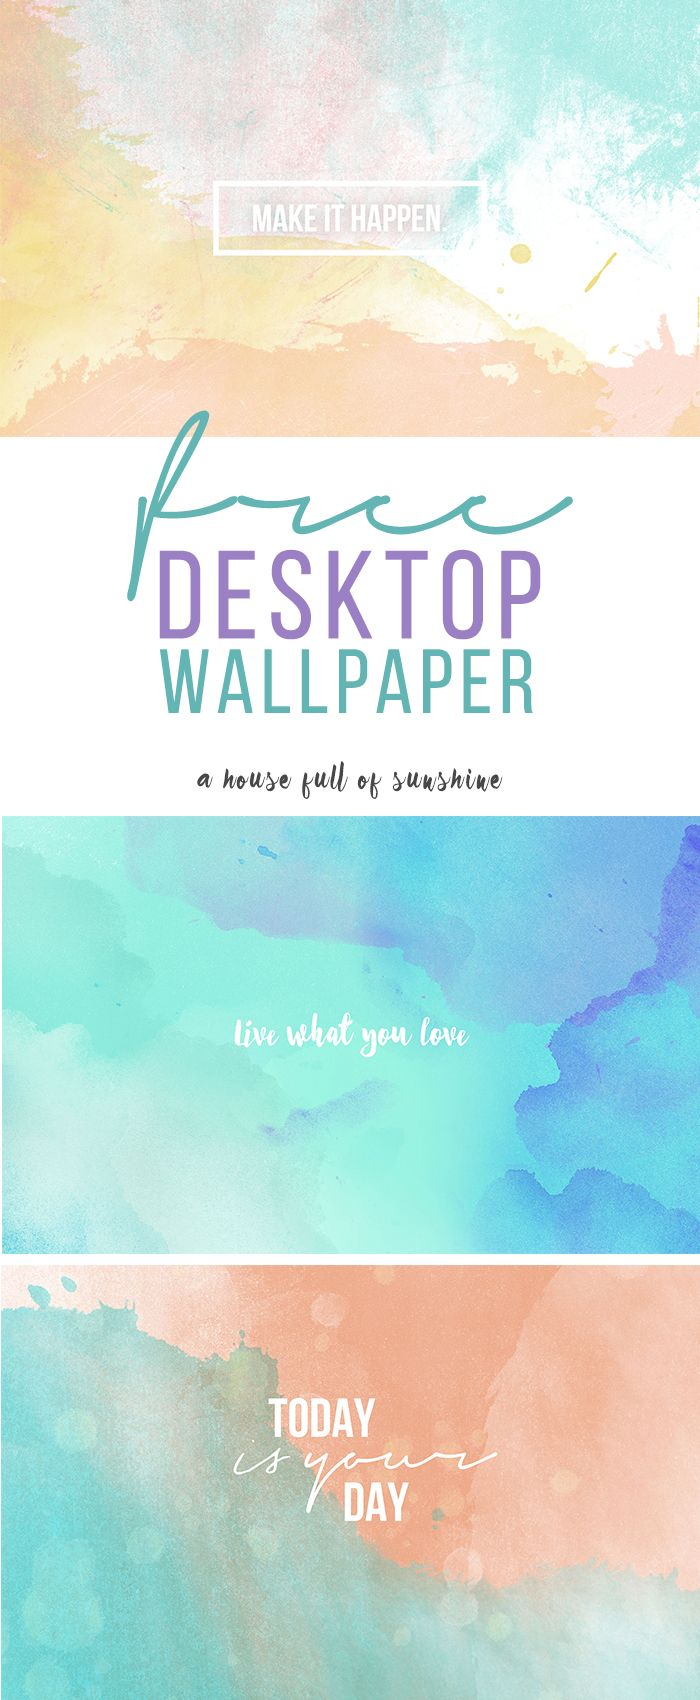 467 best free wallpapers for your phone, desktop and tablet images